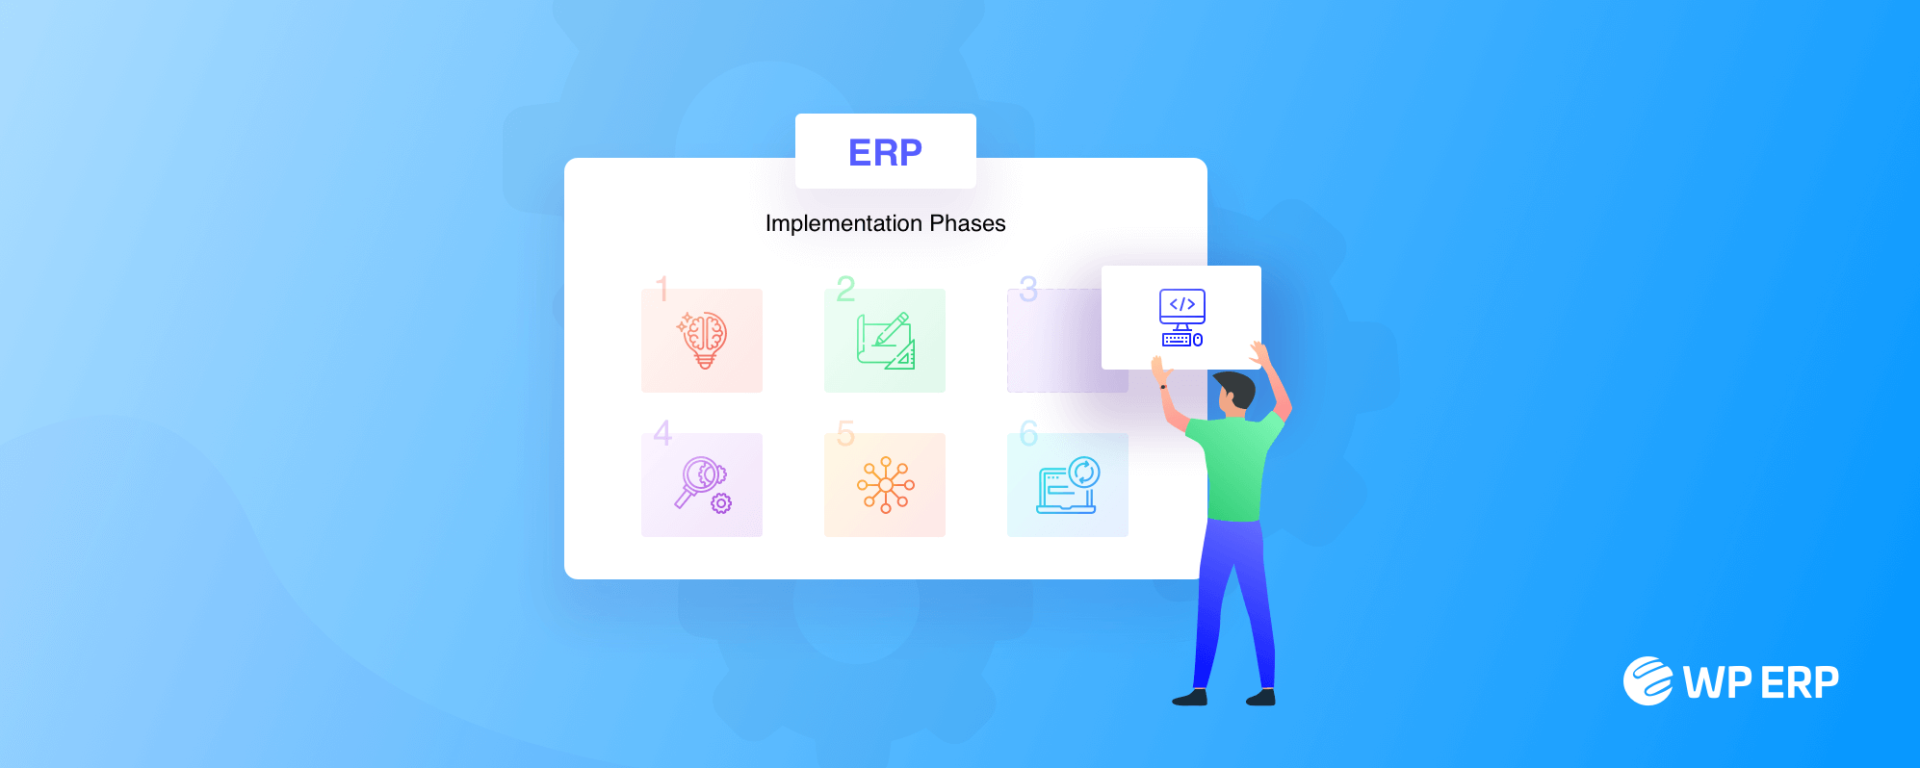 ERP implementation phases